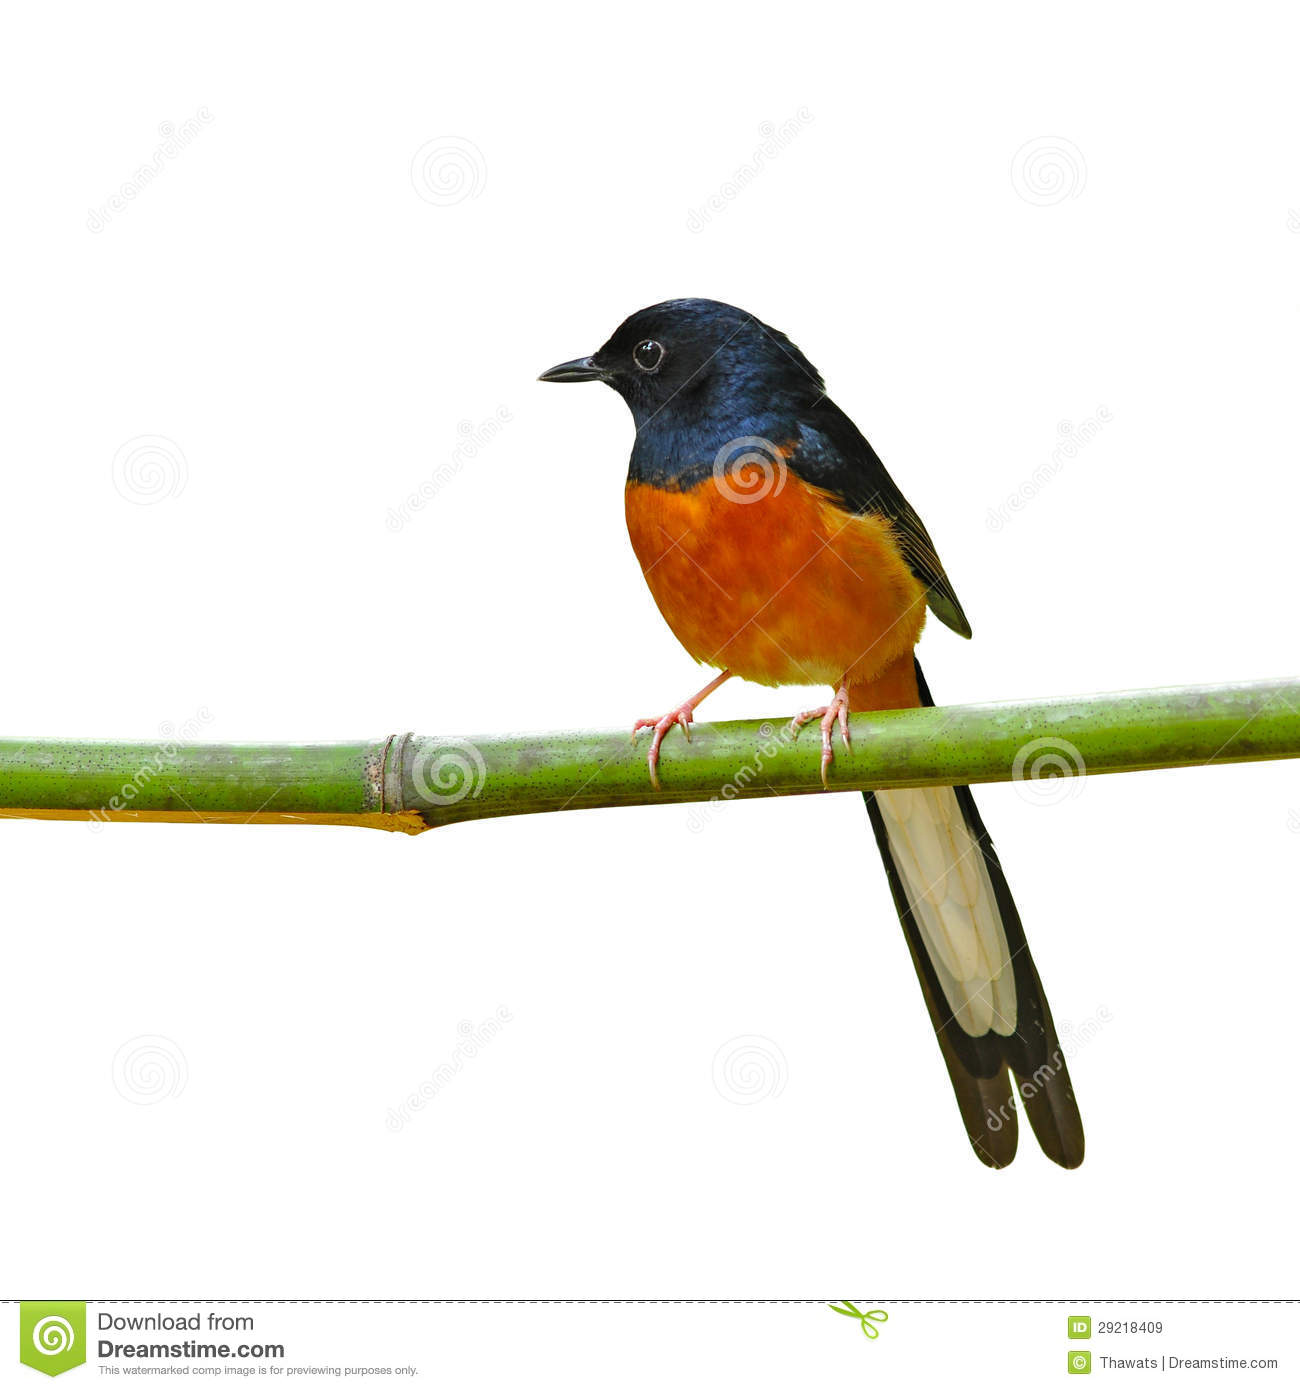 White-rumped Shama clipart #15, Download drawings